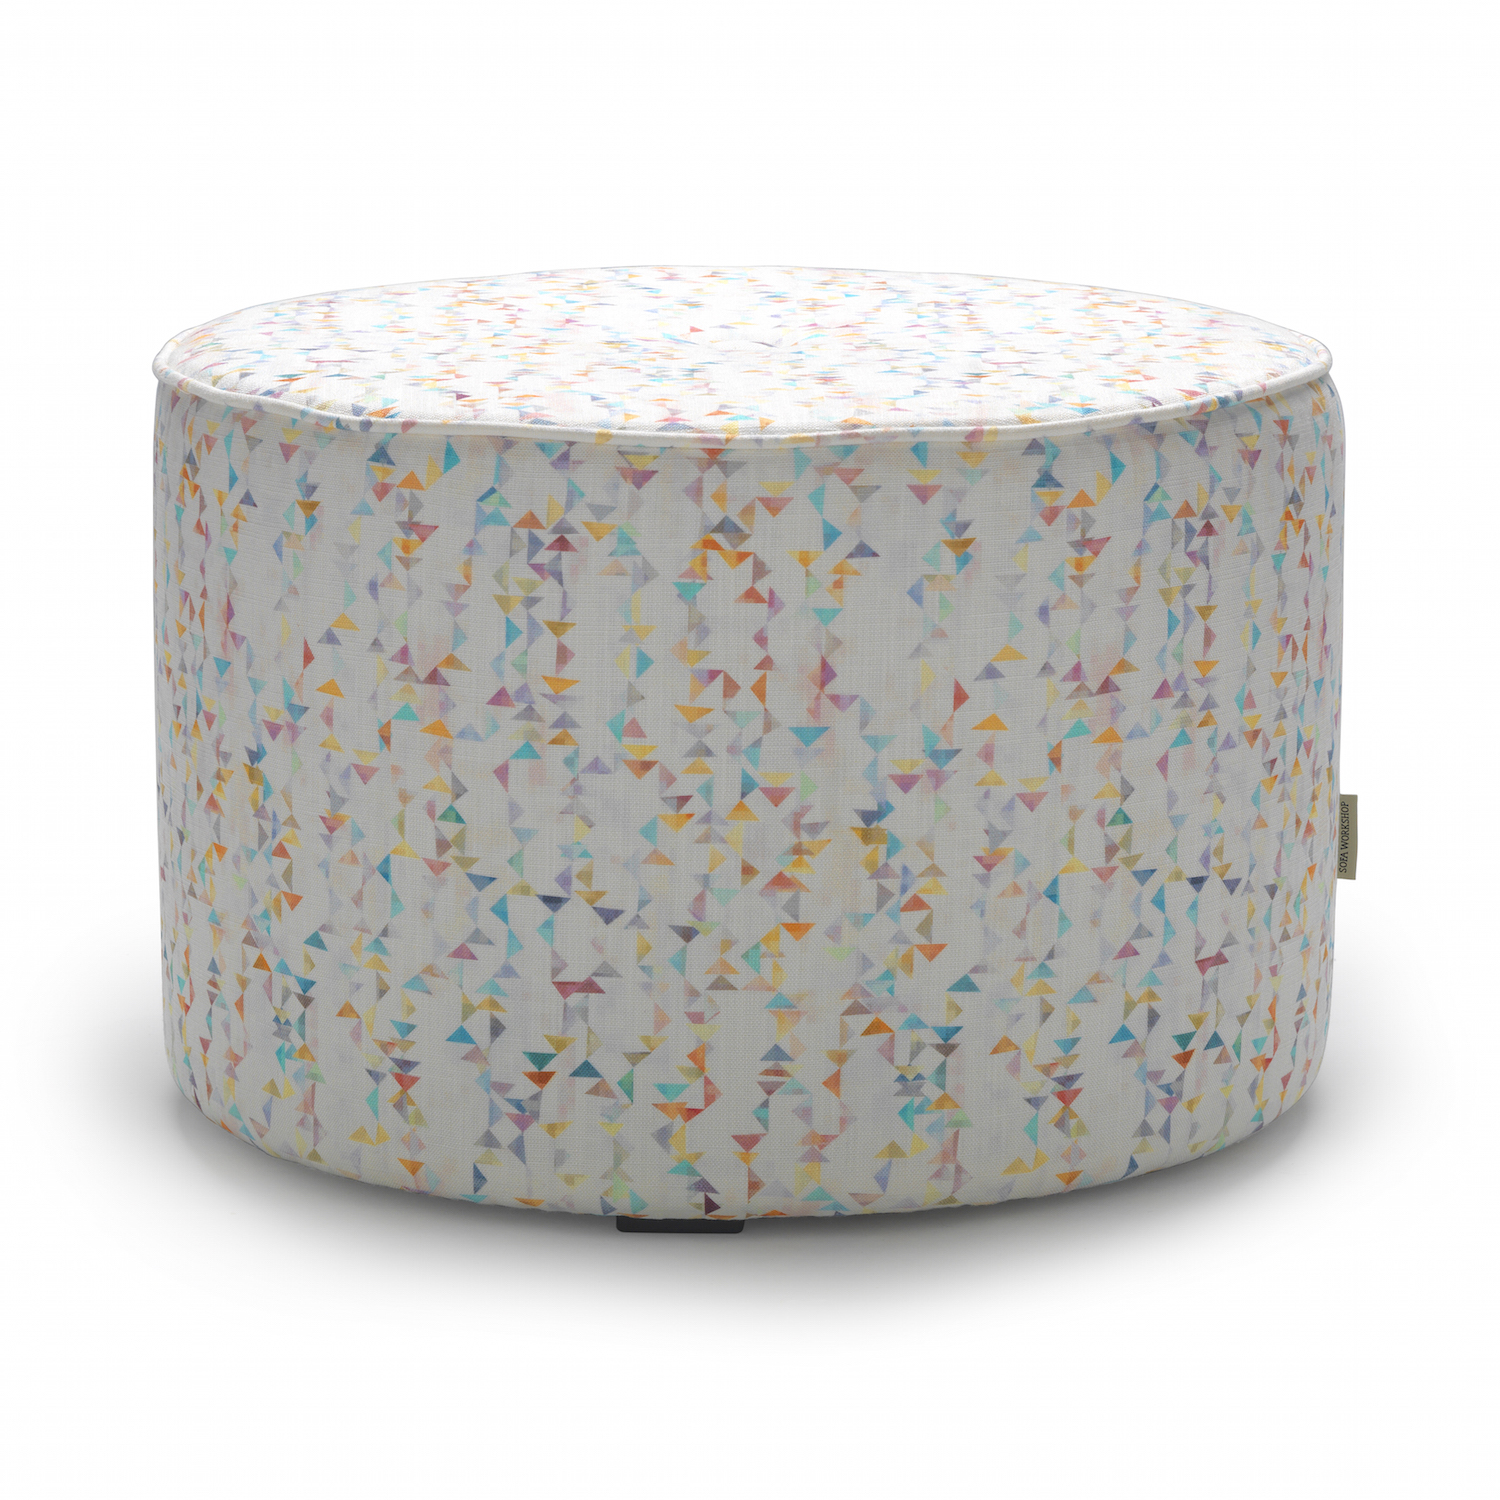 Fancy Nancy footstool in Kites